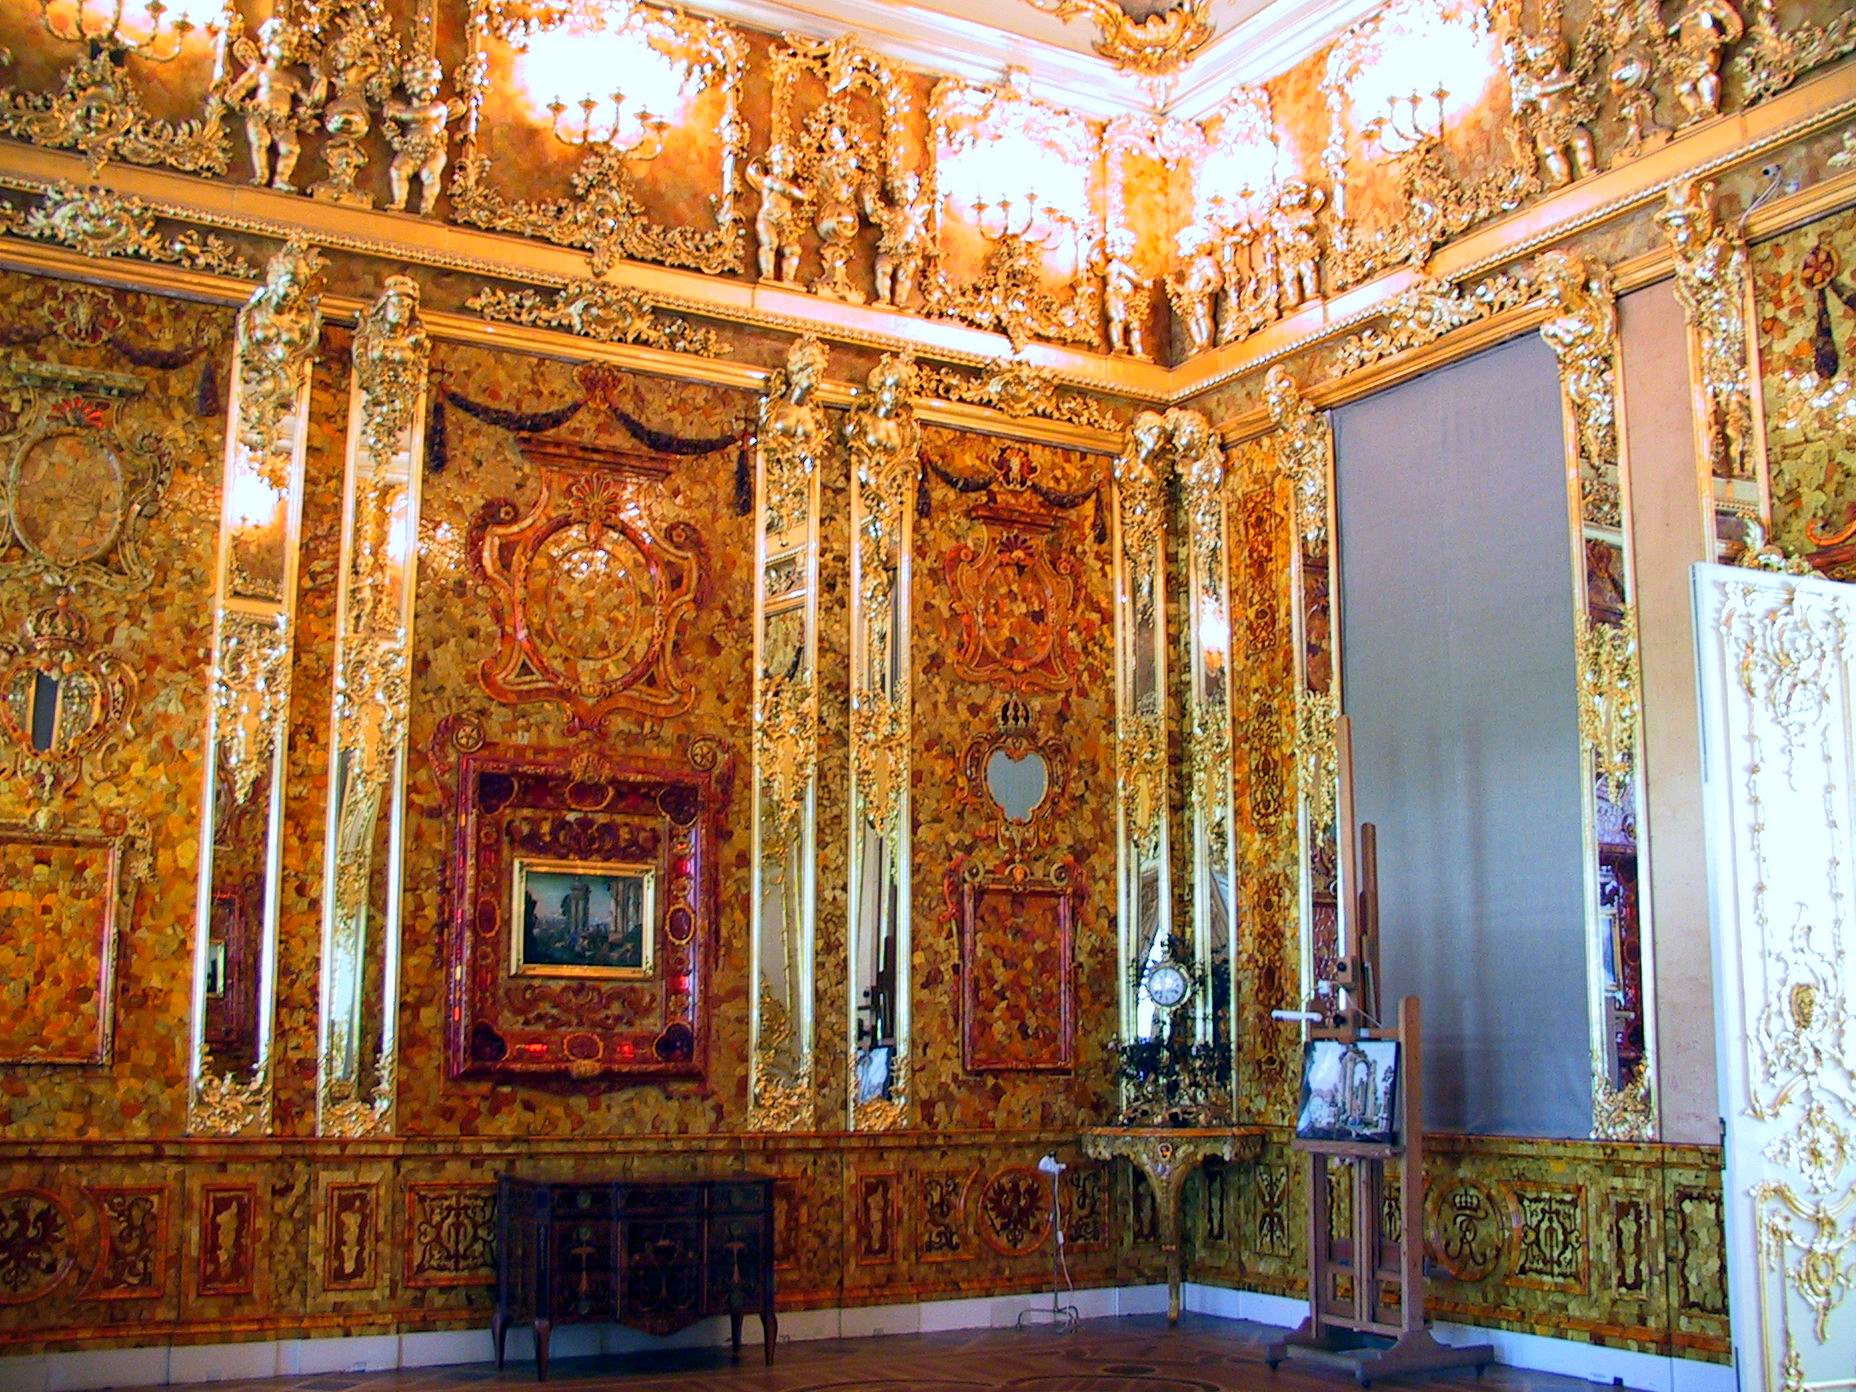 B5 05 Amber Roomof Catherine Palace St Petersburg